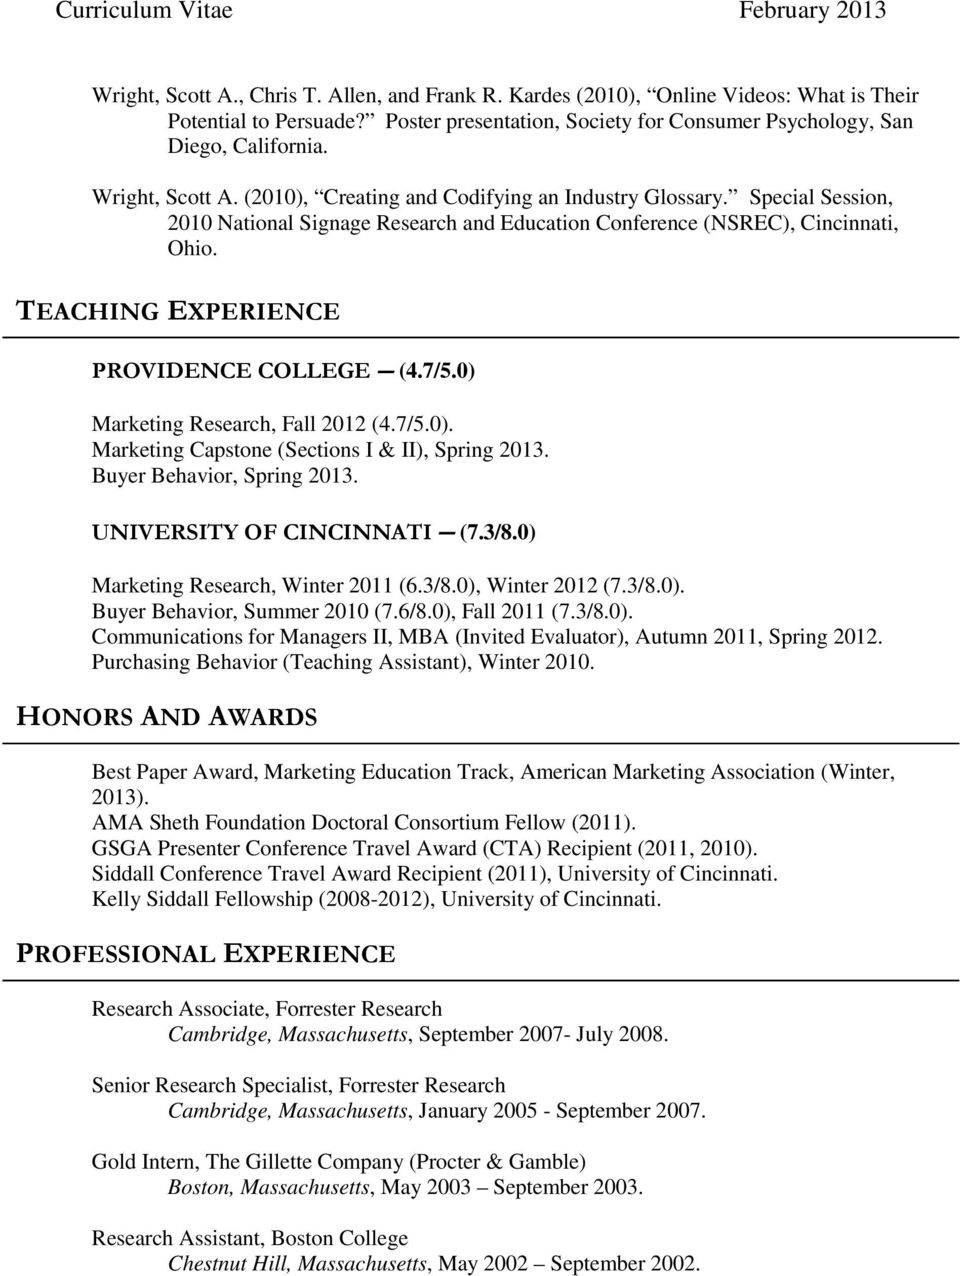 TEACHING EXPERIENCE PROVIDENCE COLLEGE (4.7/5.0) Marketing Research, Fall 2012 (4.7/5.0). Marketing Capstone (Sections I & II), Spring 2013. Buyer Behavior, Spring 2013. UNIVERSITY OF CINCINNATI (7.